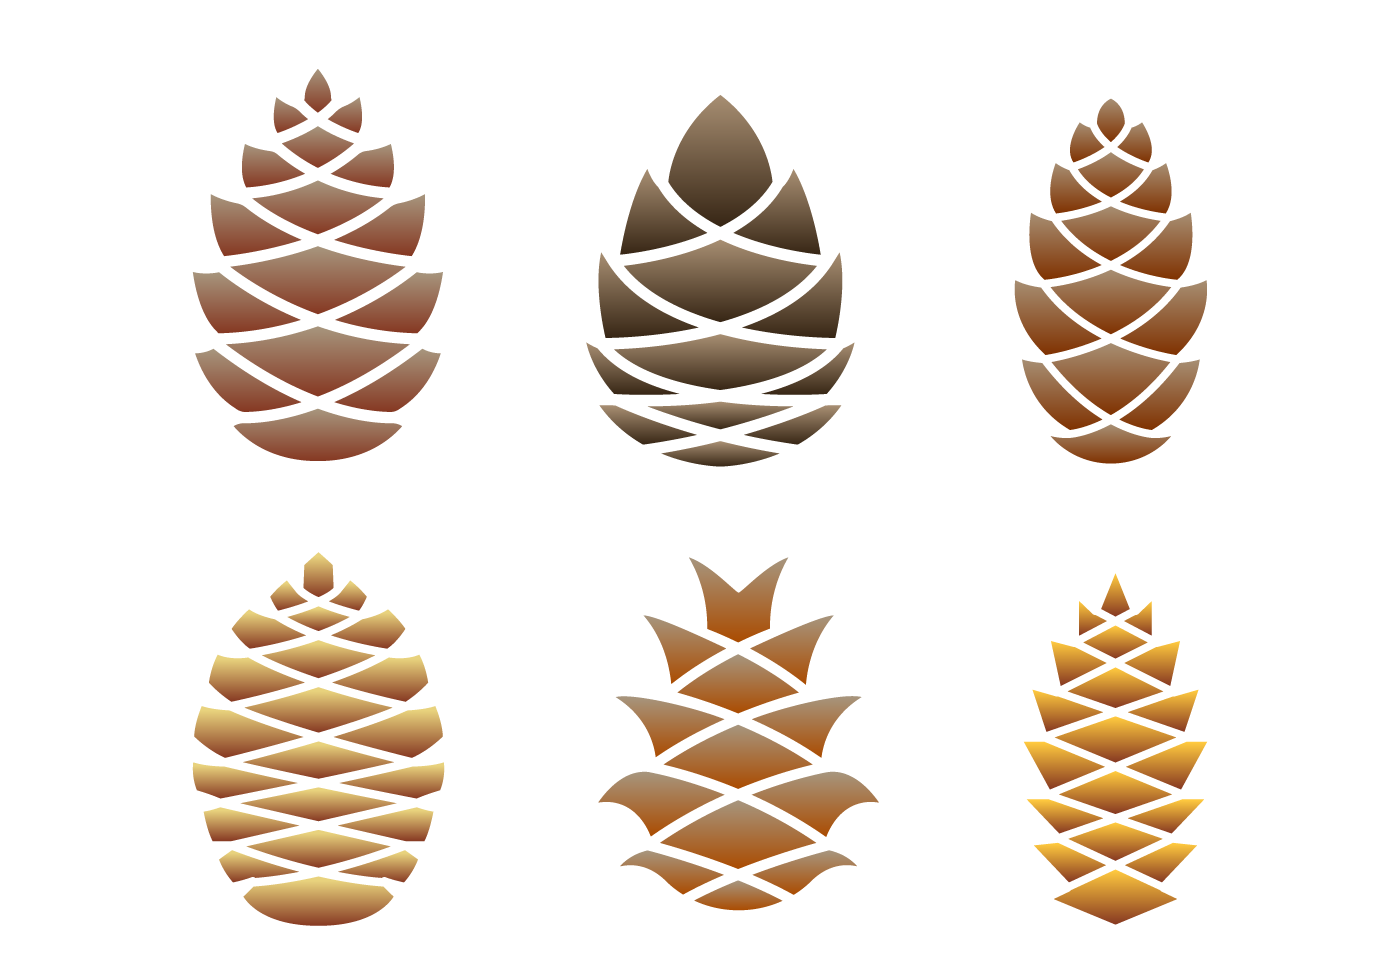 Pine Cones Logo Vector Choose From Thousands Of Free Vectors Clip Art Designs Icons And Illustrations Cr Pine Cone Drawing Vector Art Scandinavian Folk Art